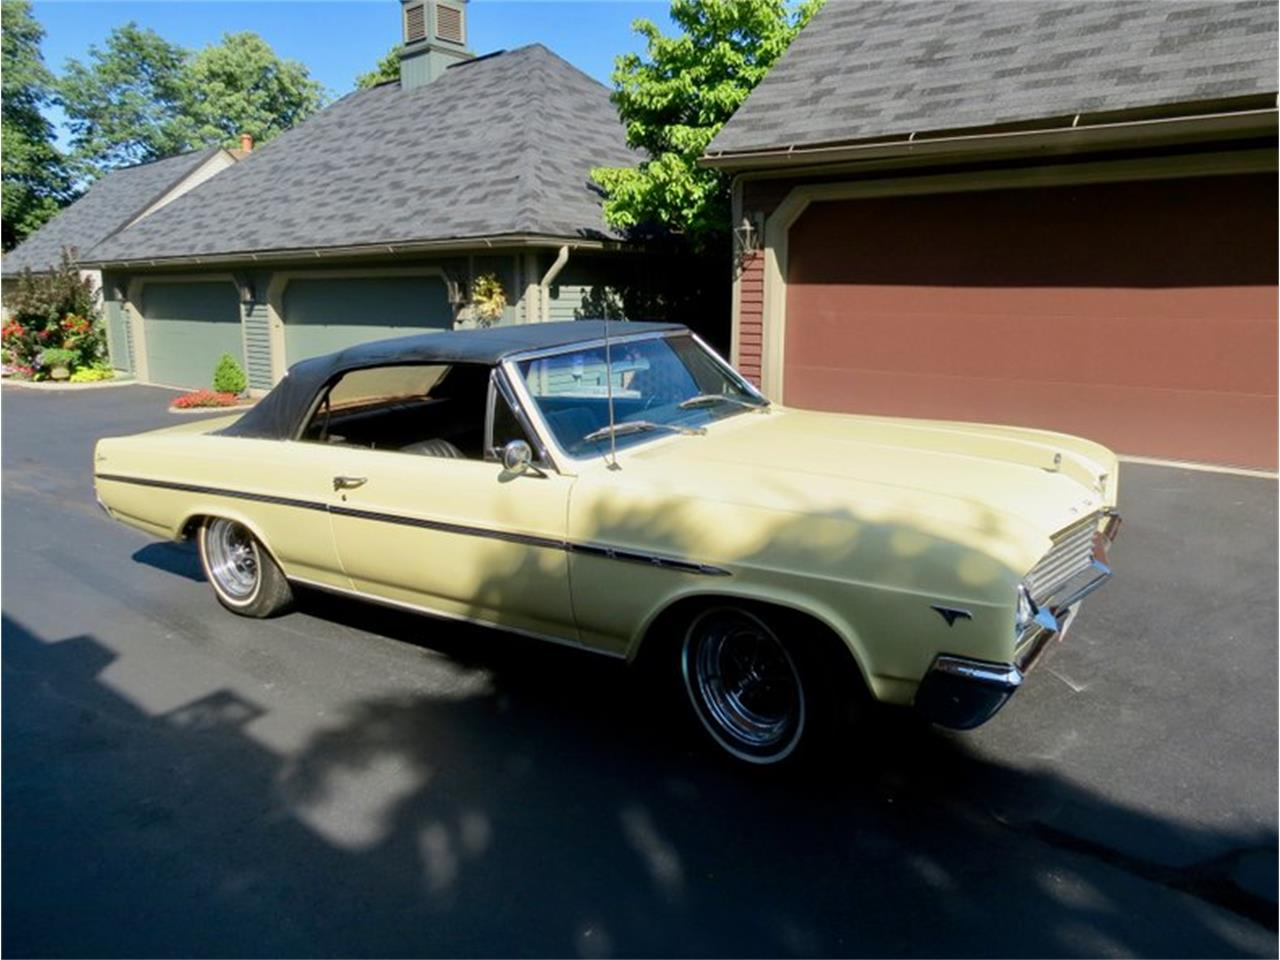 1965 Buick Skylark for sale in Dayton, OH – photo 56